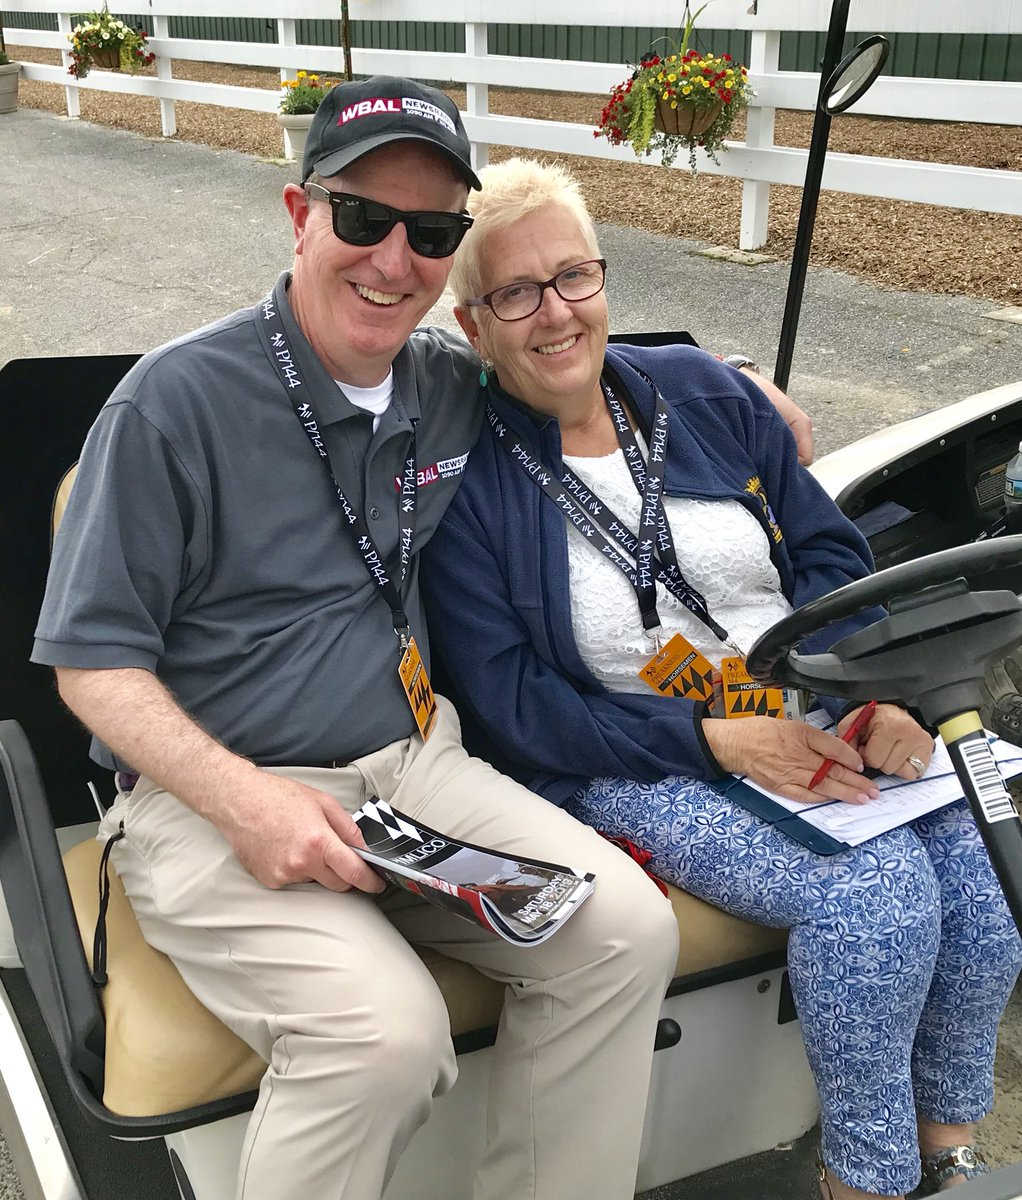 What a week it was here at the @PreaknessStakes Barn at @PimlicoRC thanks to all the hard work &amp; long hours put in by Melanie Martin &amp; her Stakes Barn horsemen's hospitality team. Melanie was doing double duty also as the #Lasix Coordinator for @MD_DLLR #MarylandRacingCommission<br>http://pic.twitter.com/GutfW6tOrY